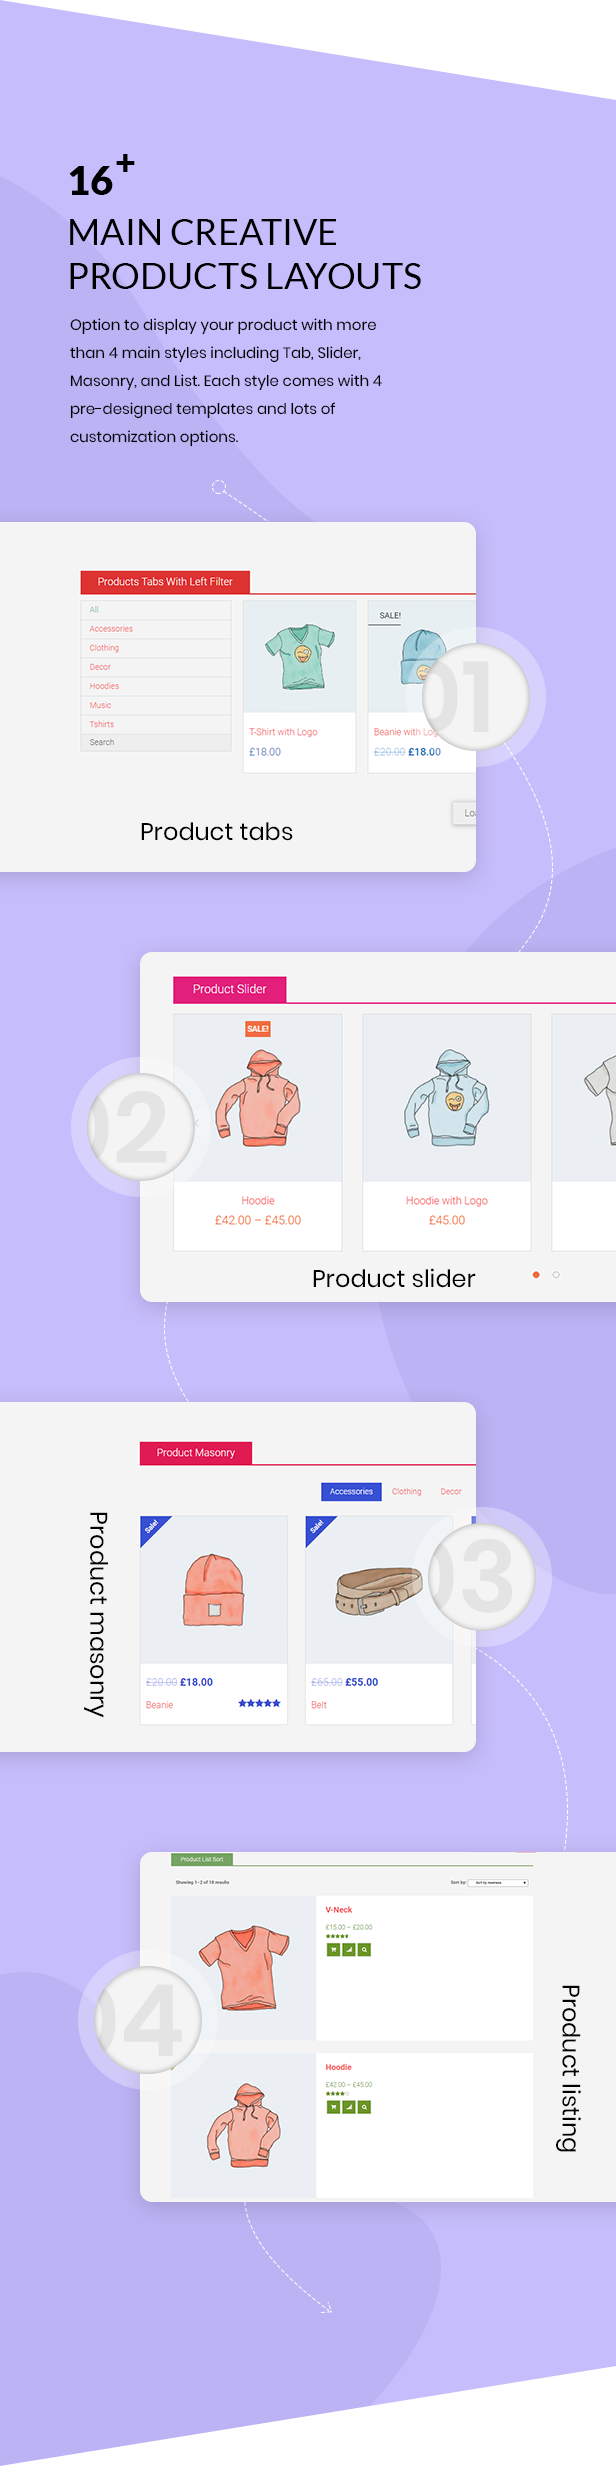 Noo Products Layouts - WooCommerce Addon for Elementor Page Builder - 2